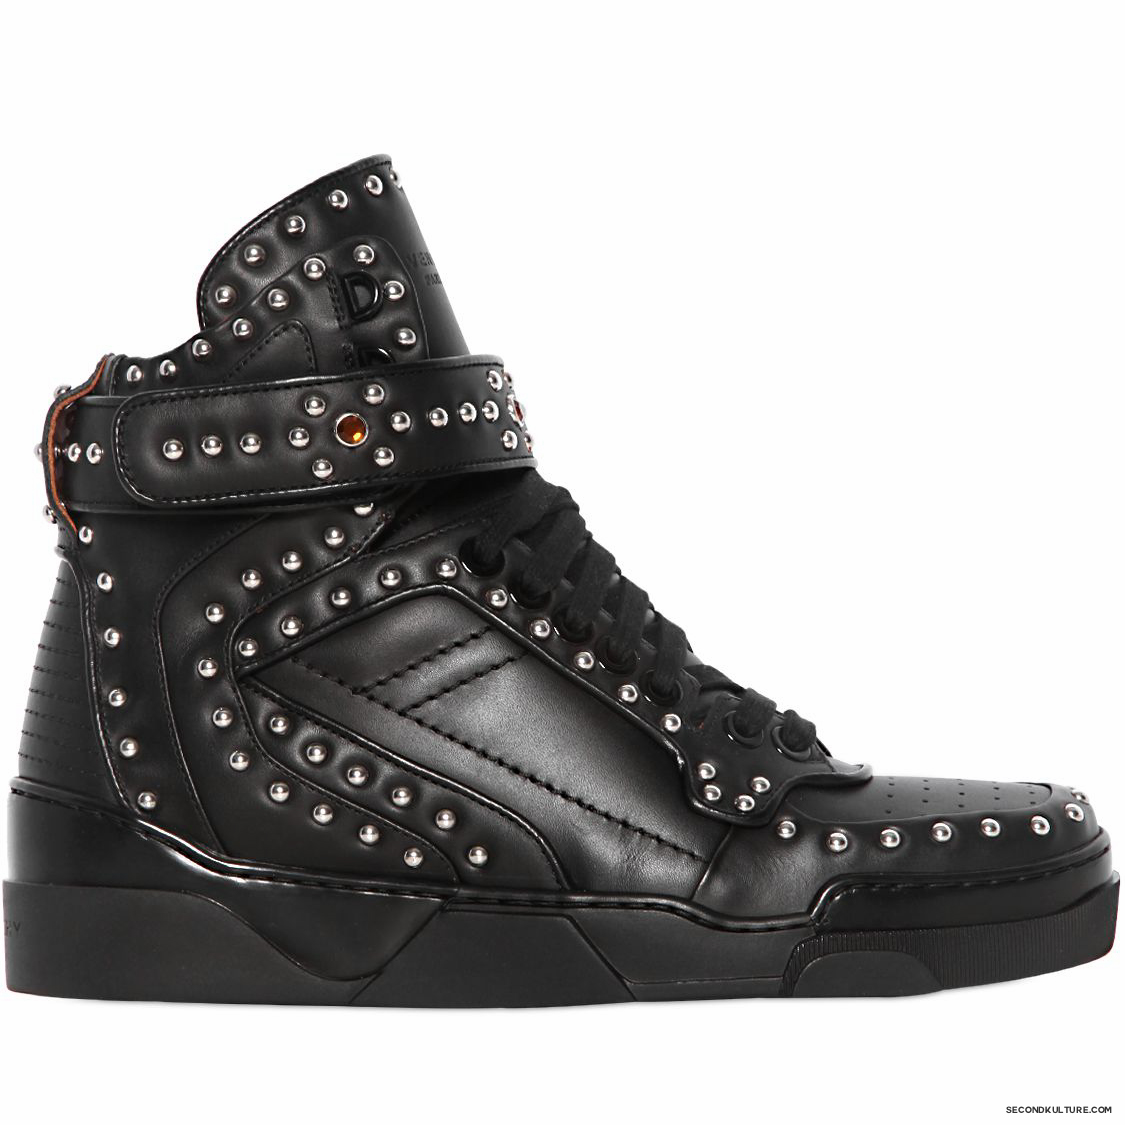 Givenchy-Black-Metal-and-Swarovski-Studded-Tyson-Leather-High-Top-Sneakers-Fall-Winter-2015-1